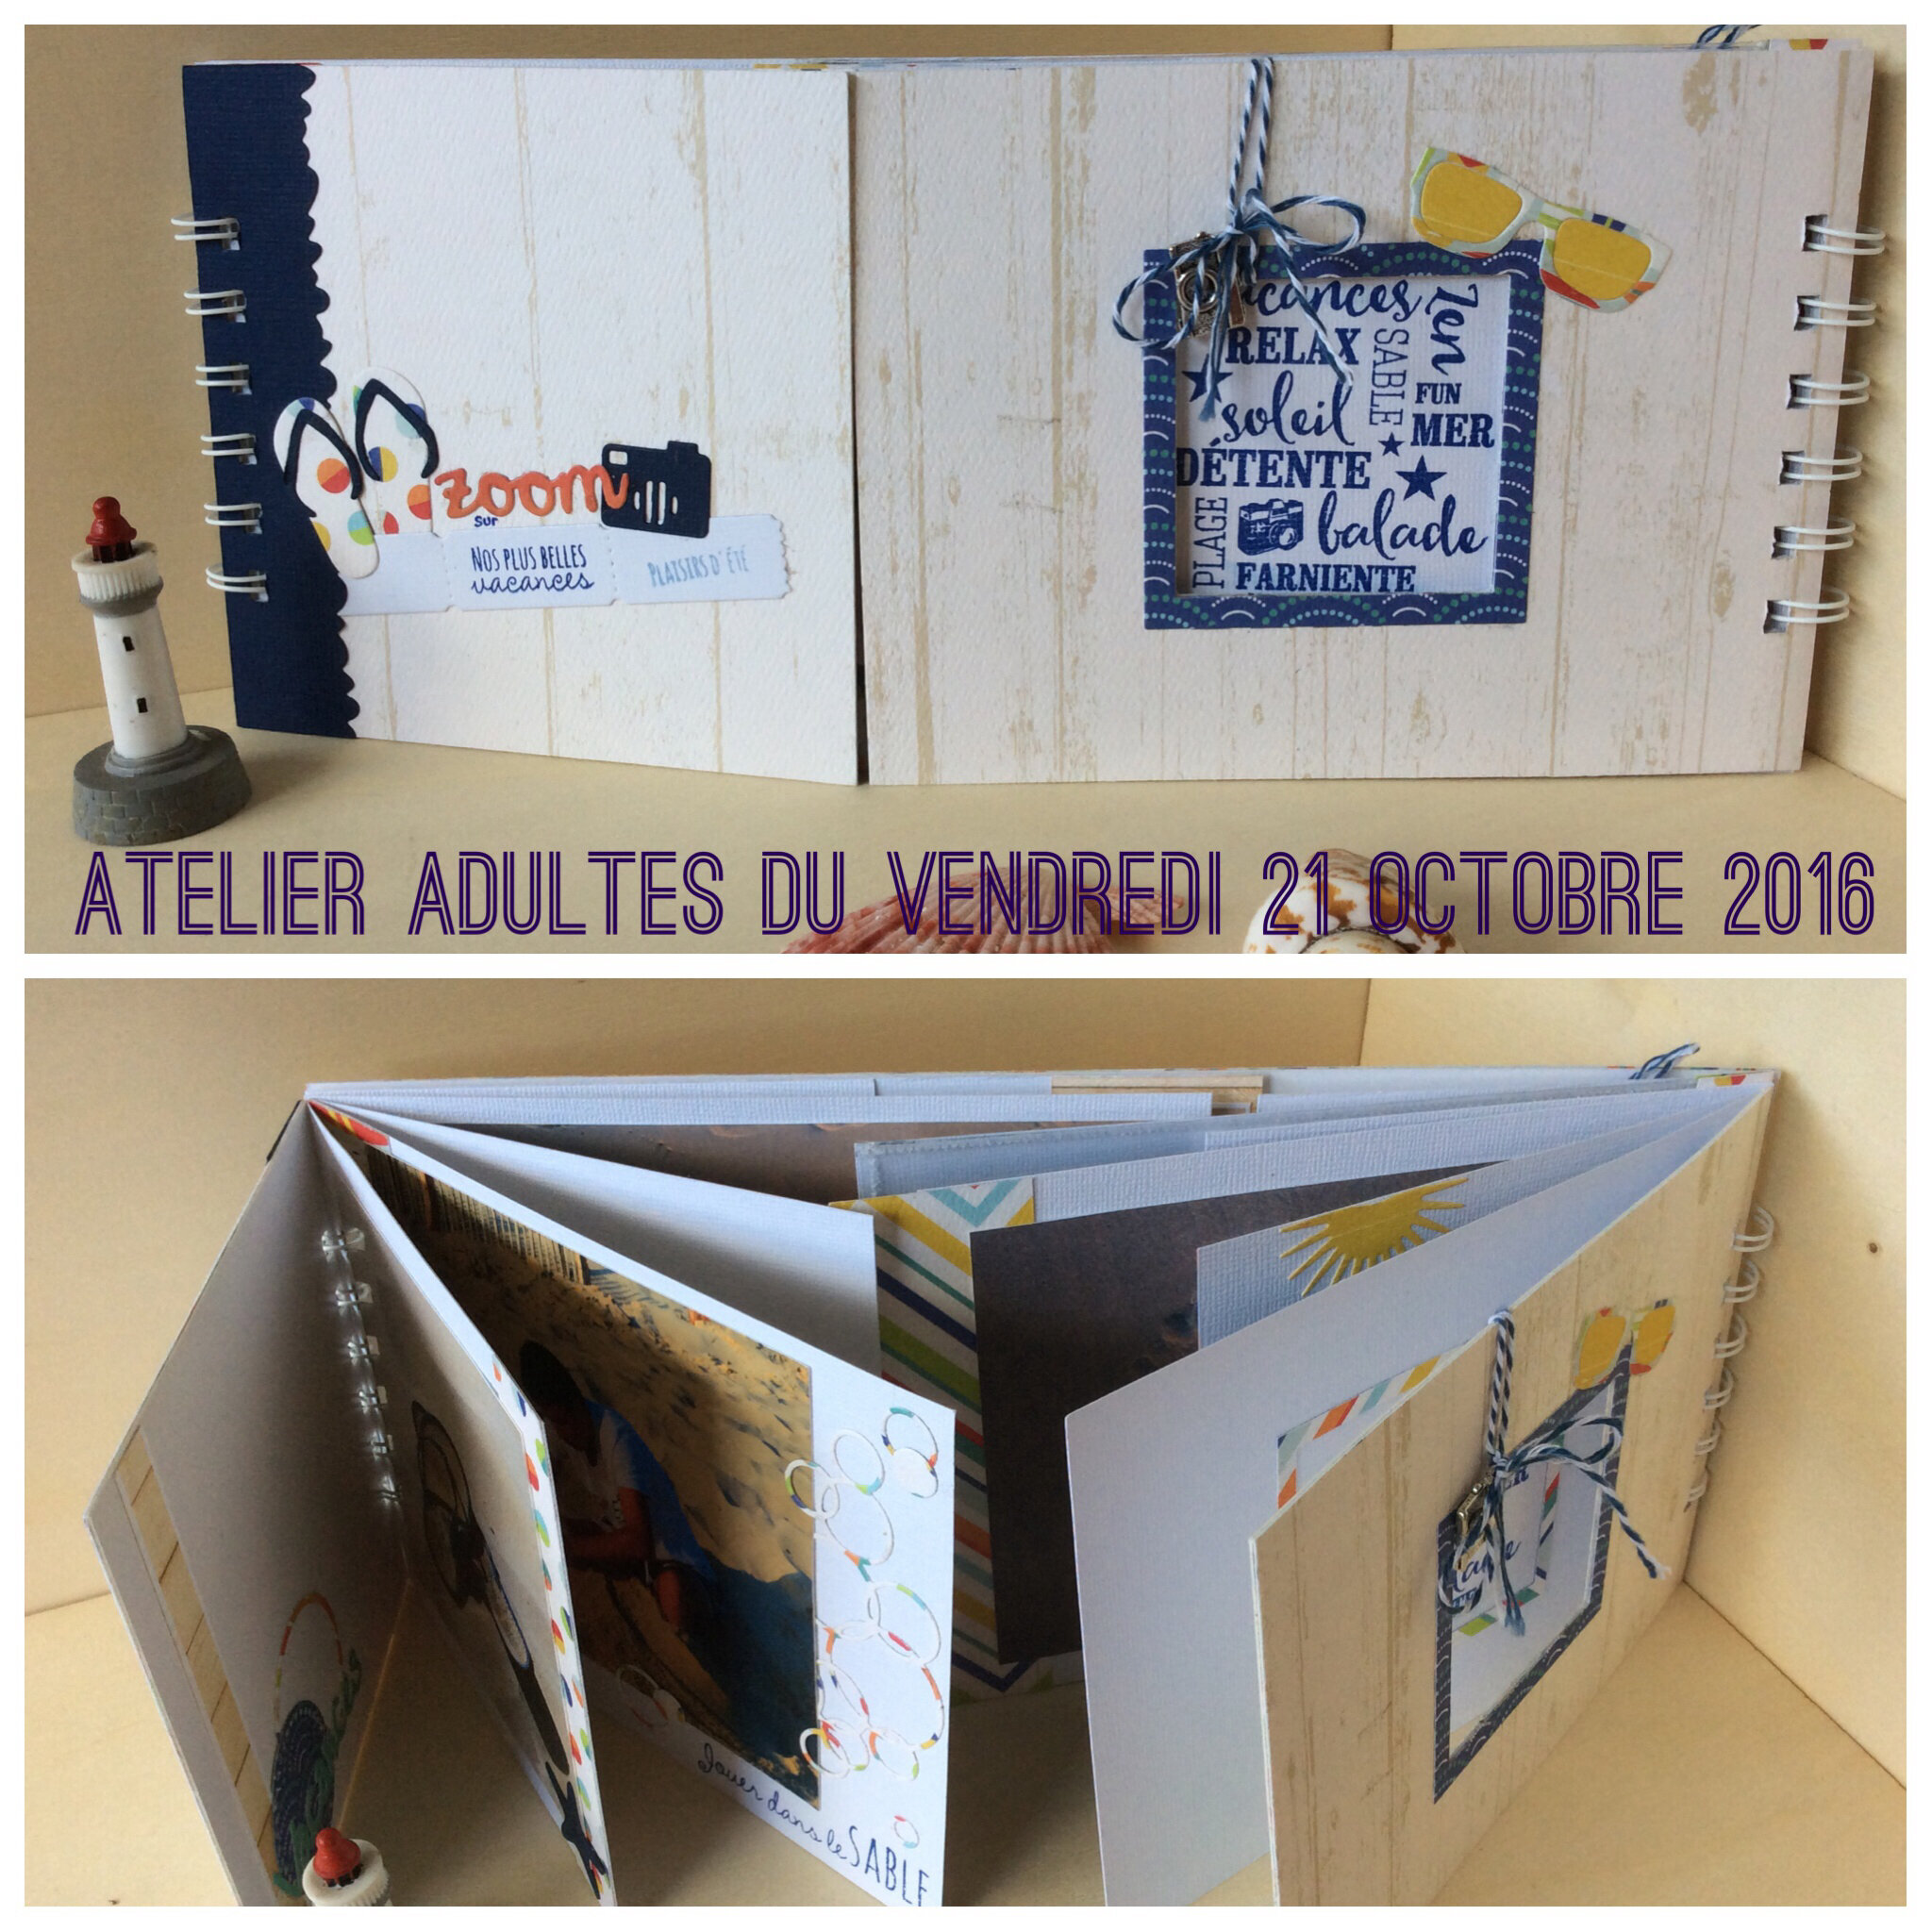 Atelier adultes du vendredi 21 octobre 2016